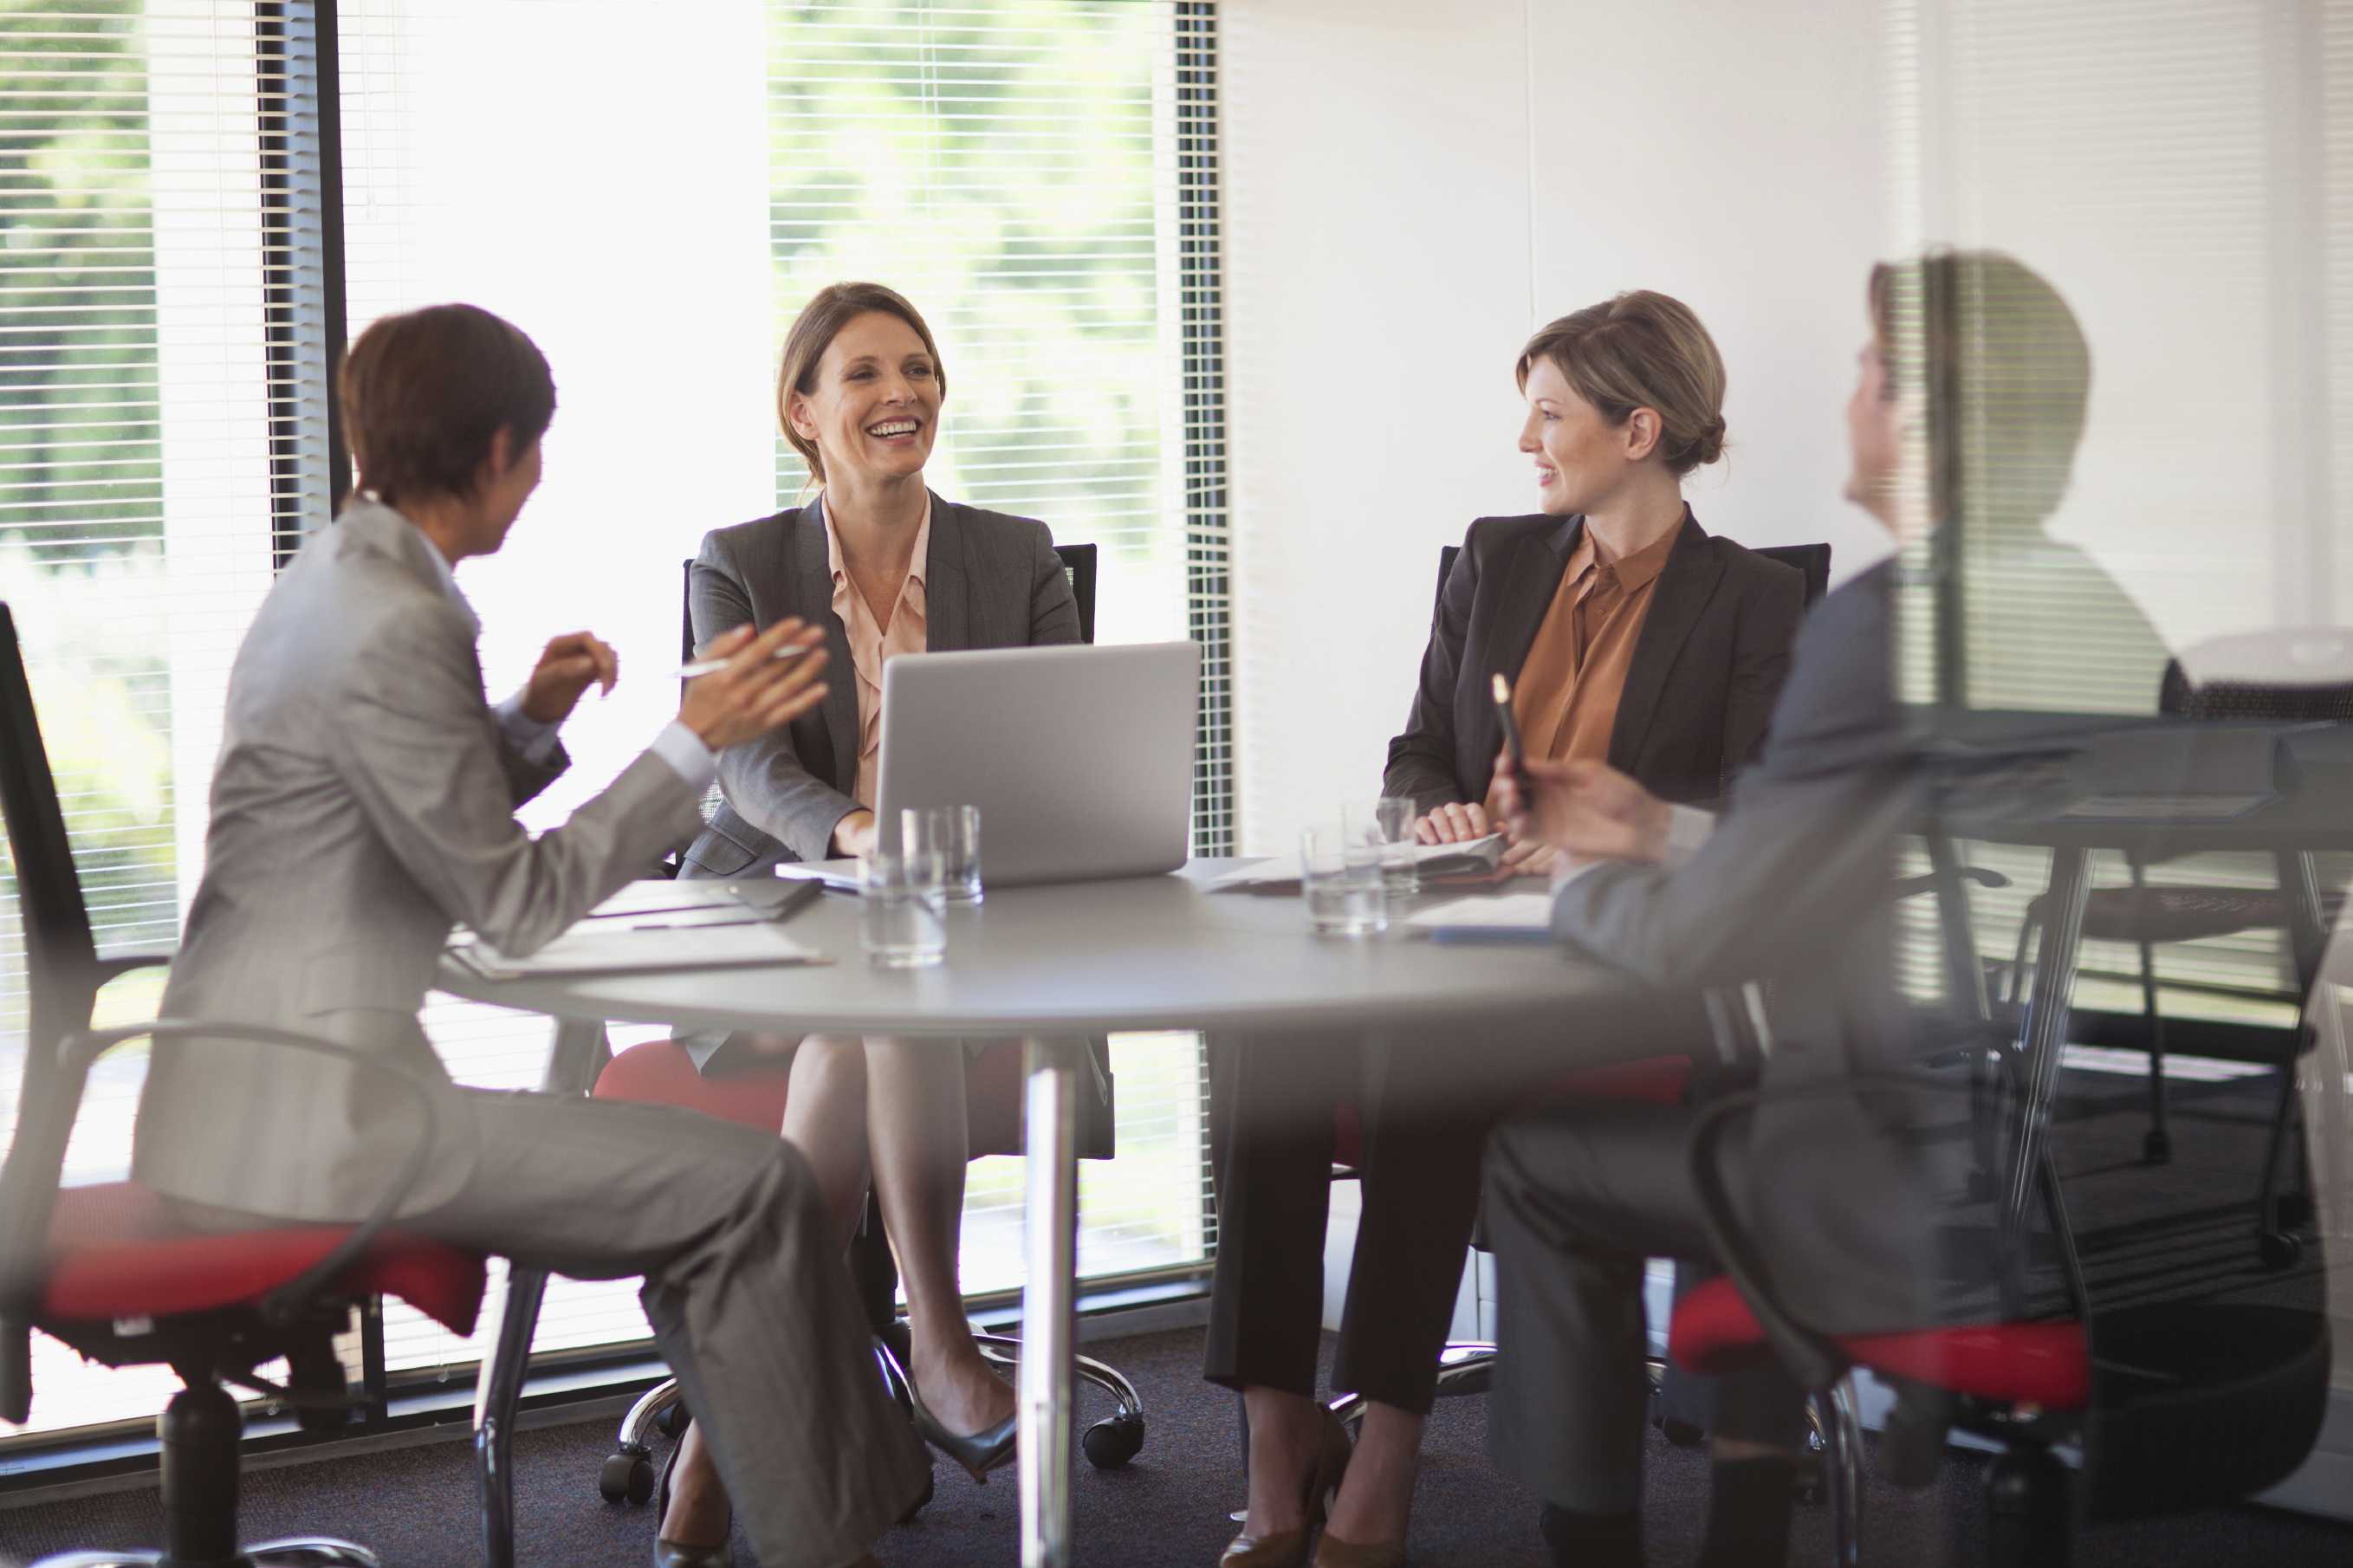 Businesswomen_Meeting_at_Conference_Table